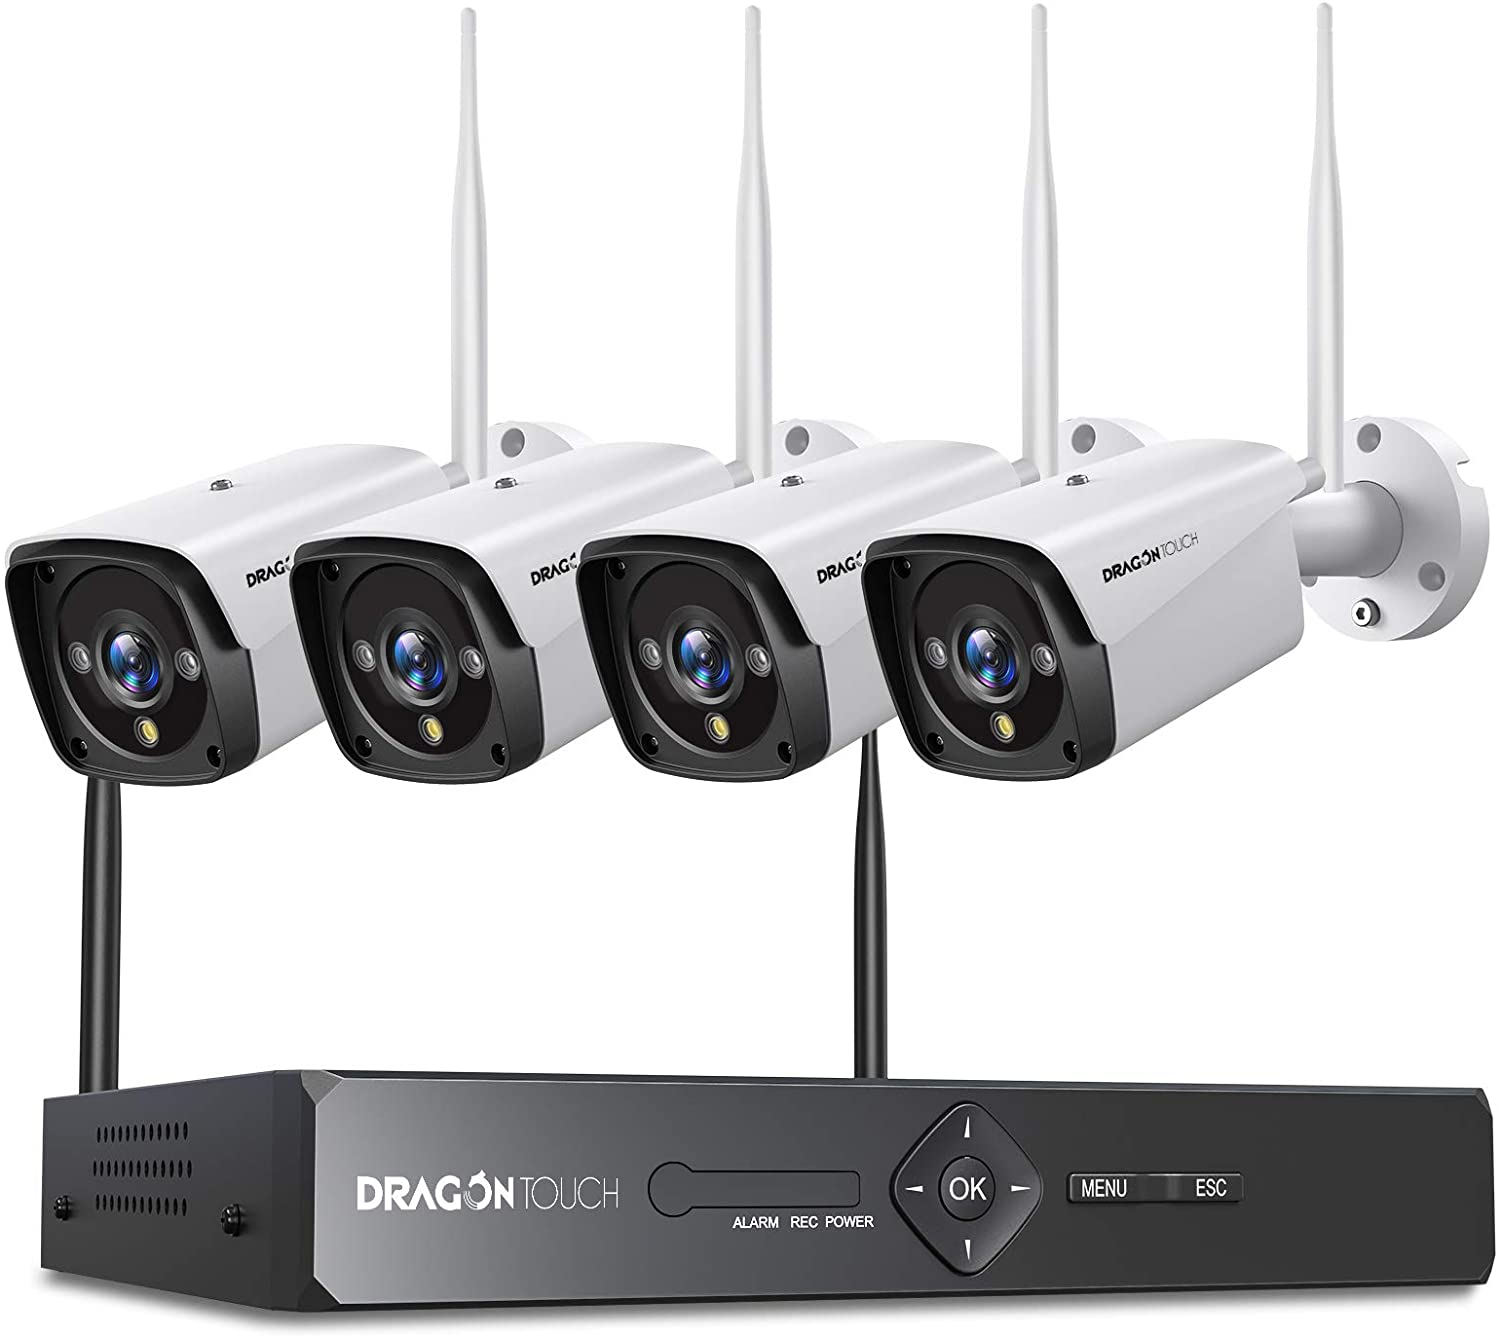 3MP Wireless Security Camera System, Dragon Touch 8CH NVR 4pcs Outdoor Home Security Camera System with Color Night Vision, AI Human Detection, Motion Alert, Remote Access, IP66 Waterproof, No HDD